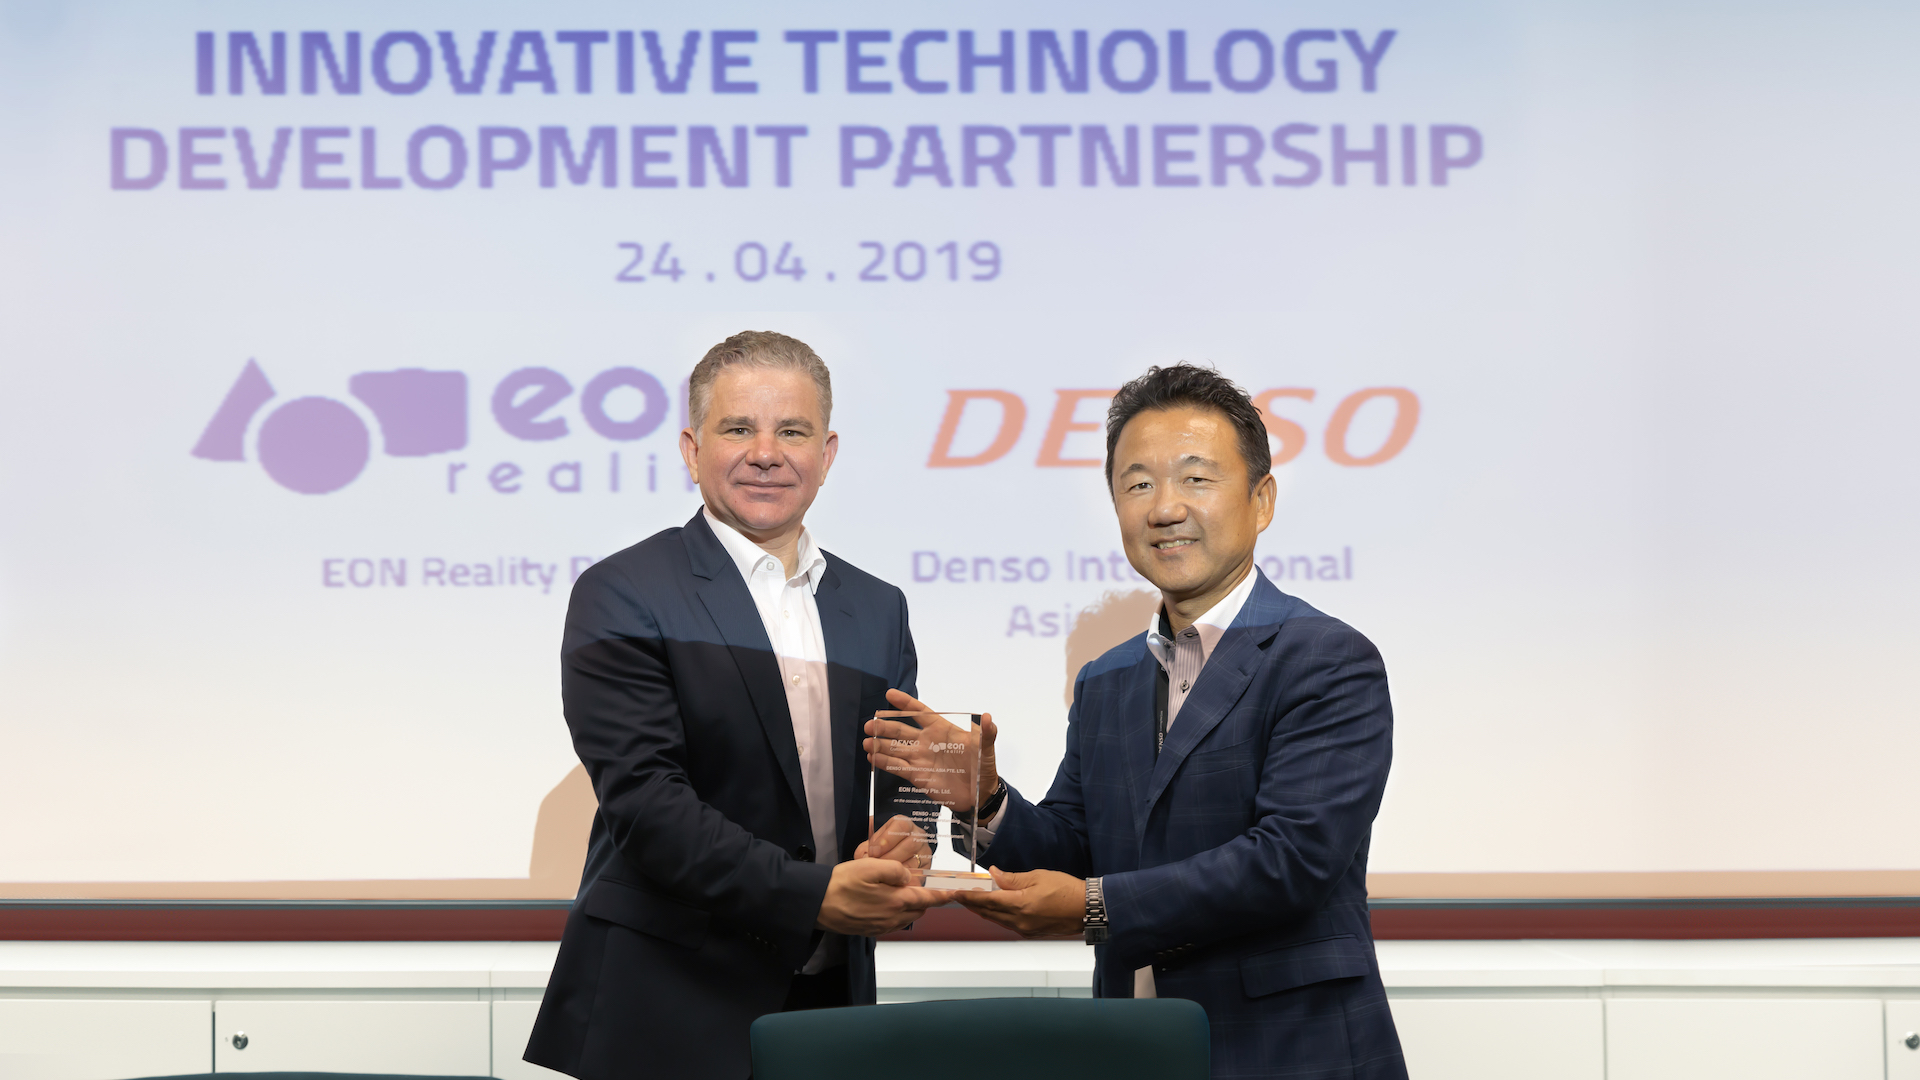 EON Reality and DENSO International Asia Singapore Announce Continued Partnership Following Initial Success